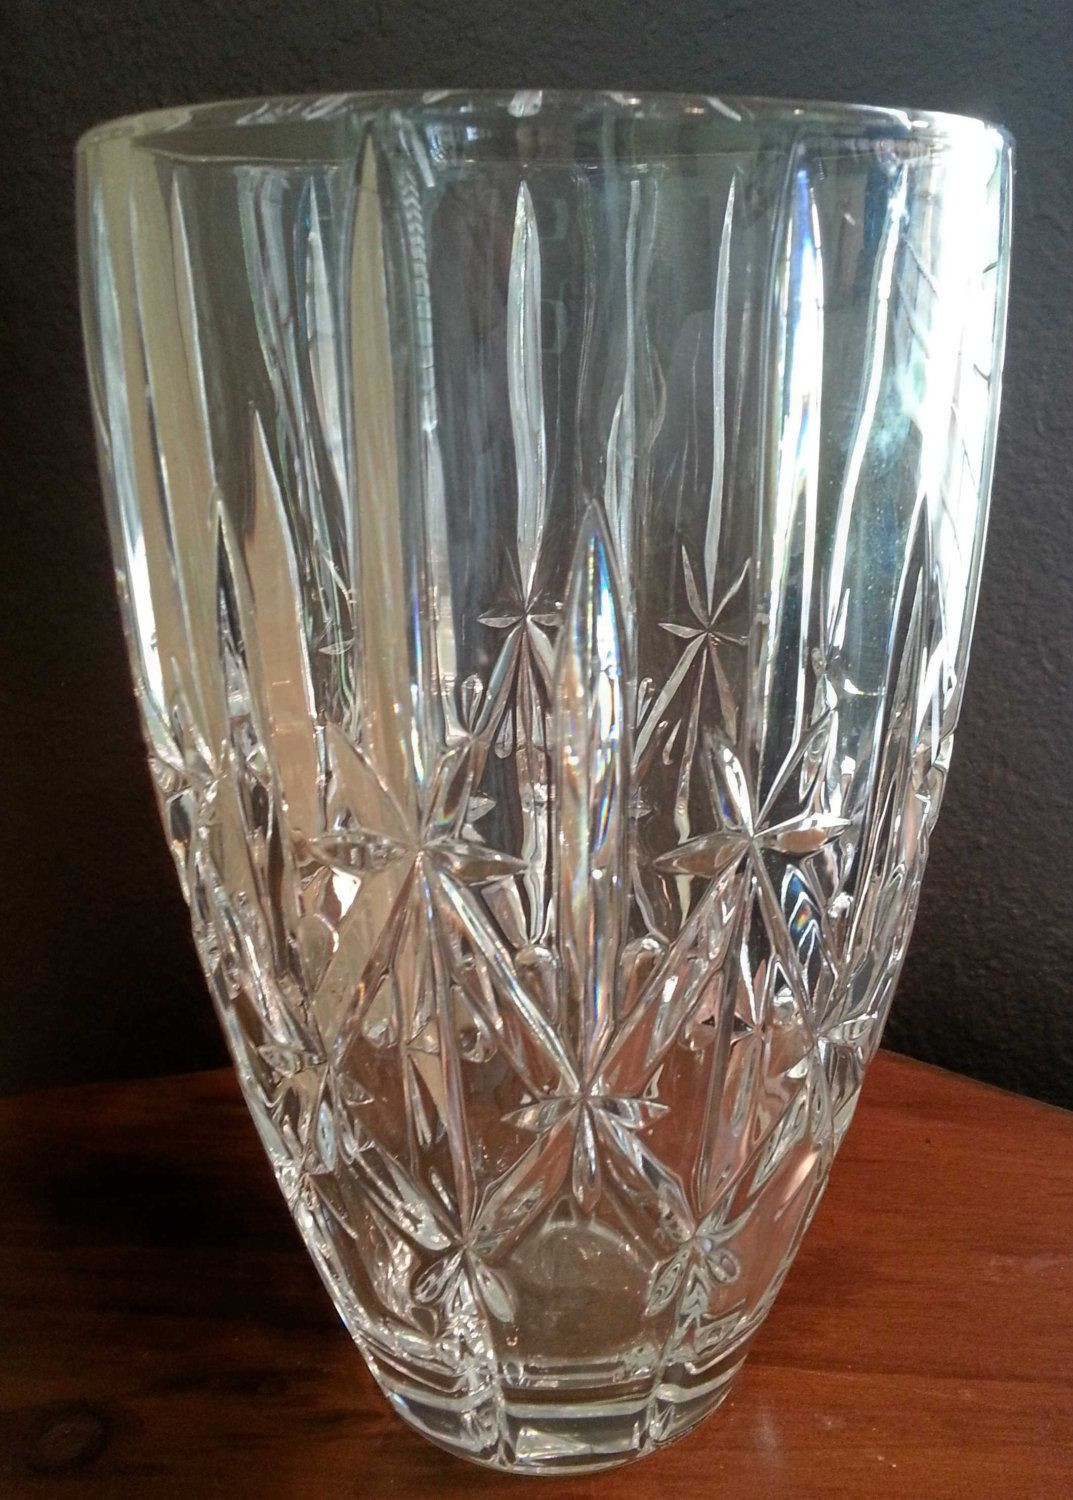 waterford 9 inch vase of waterford crystal vases pics marquis by waterford sparkle 9 inch intended for marquis by waterford sparkle 9 inch vase crystal vase